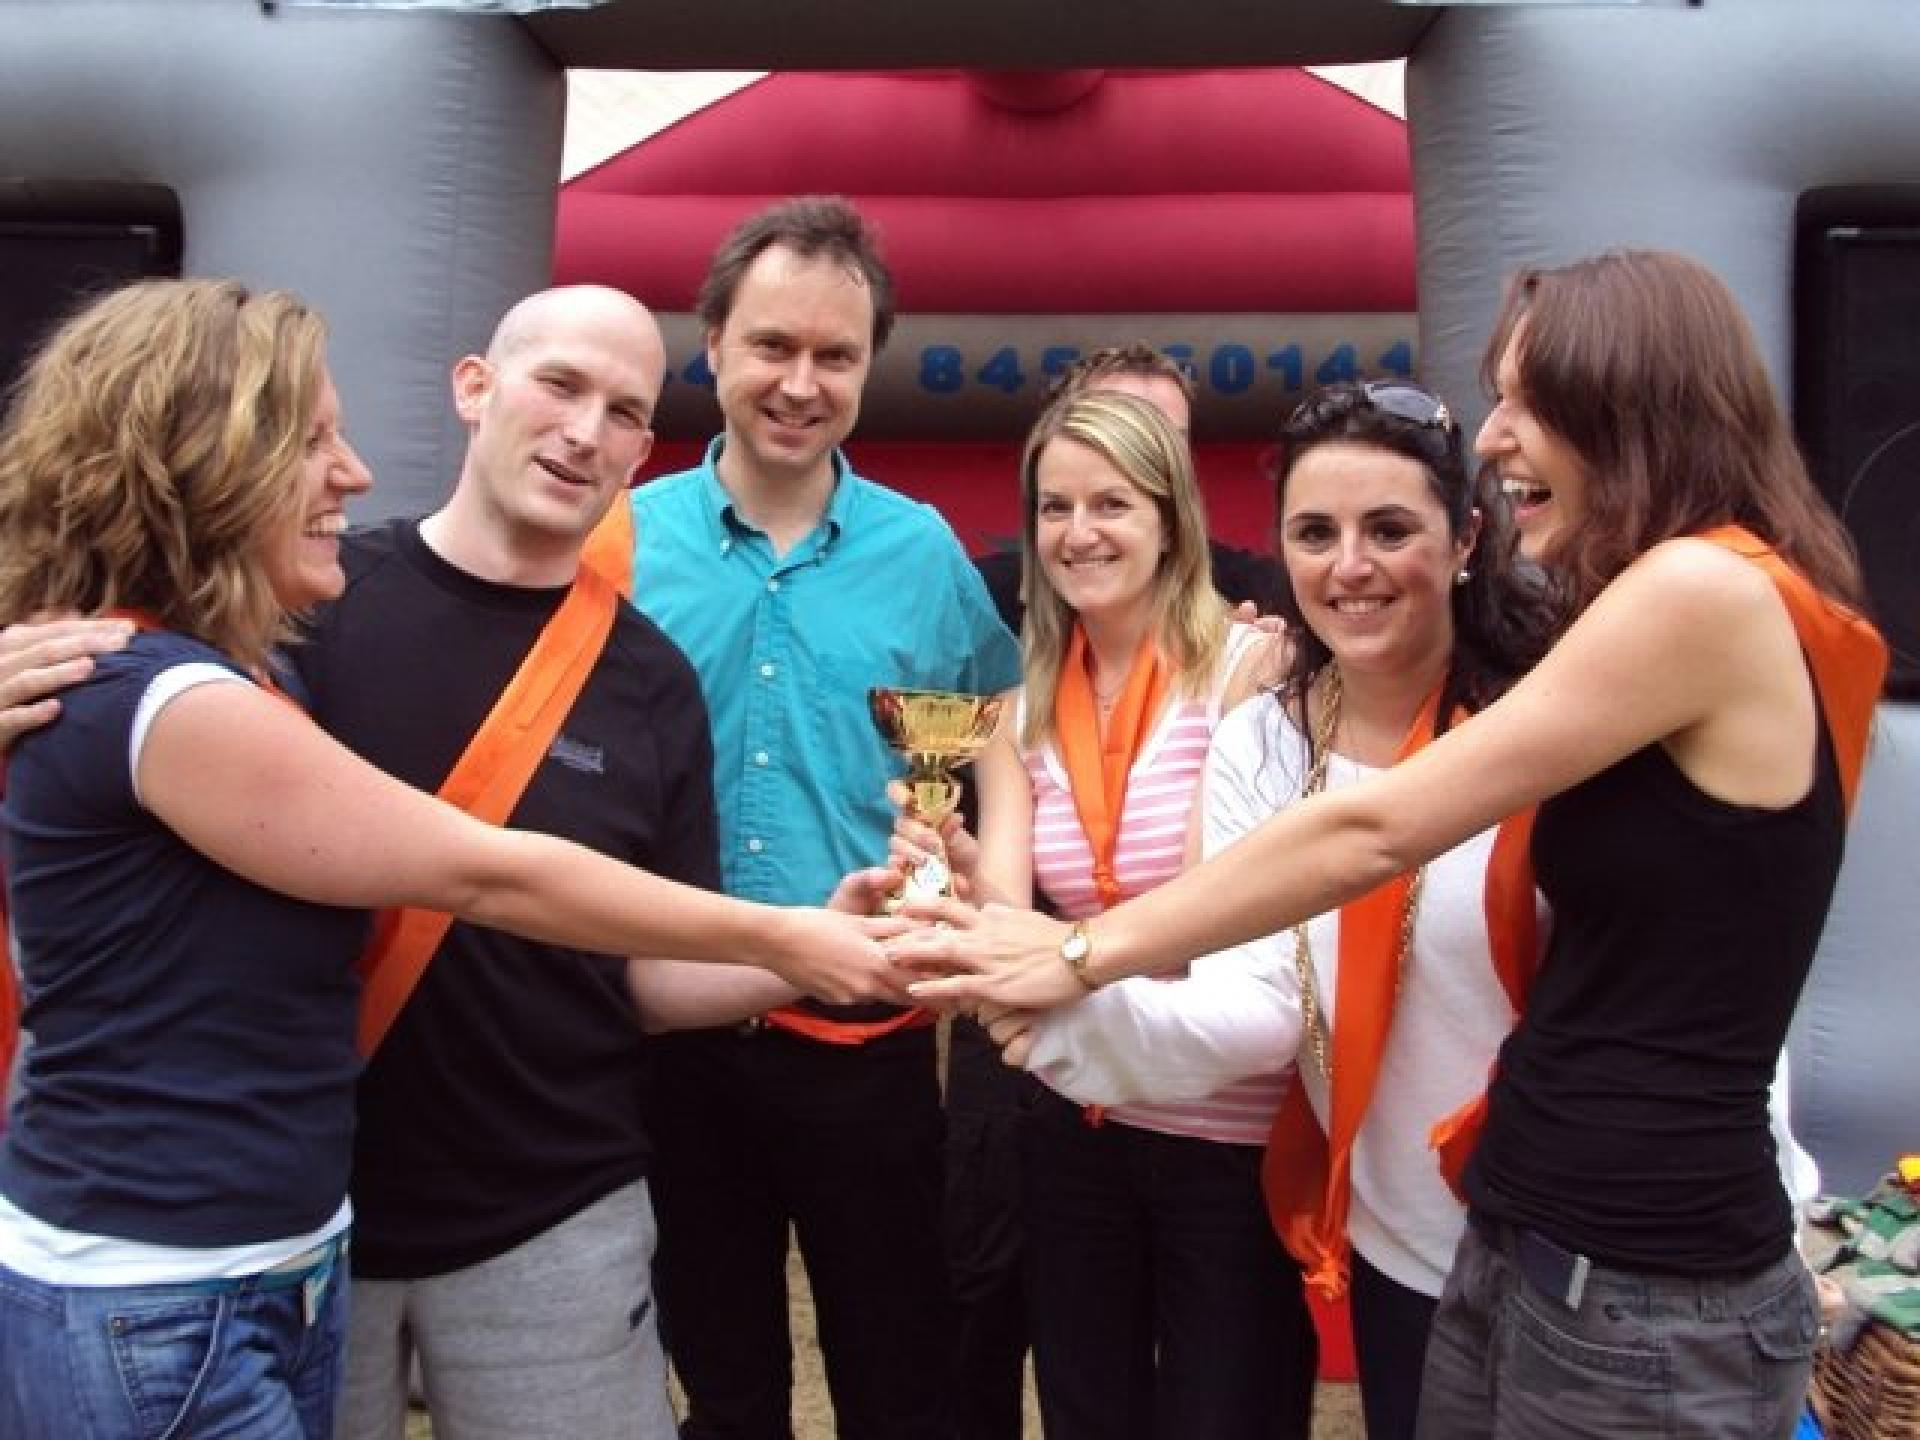 It's a Knockout and Team Building with GHK